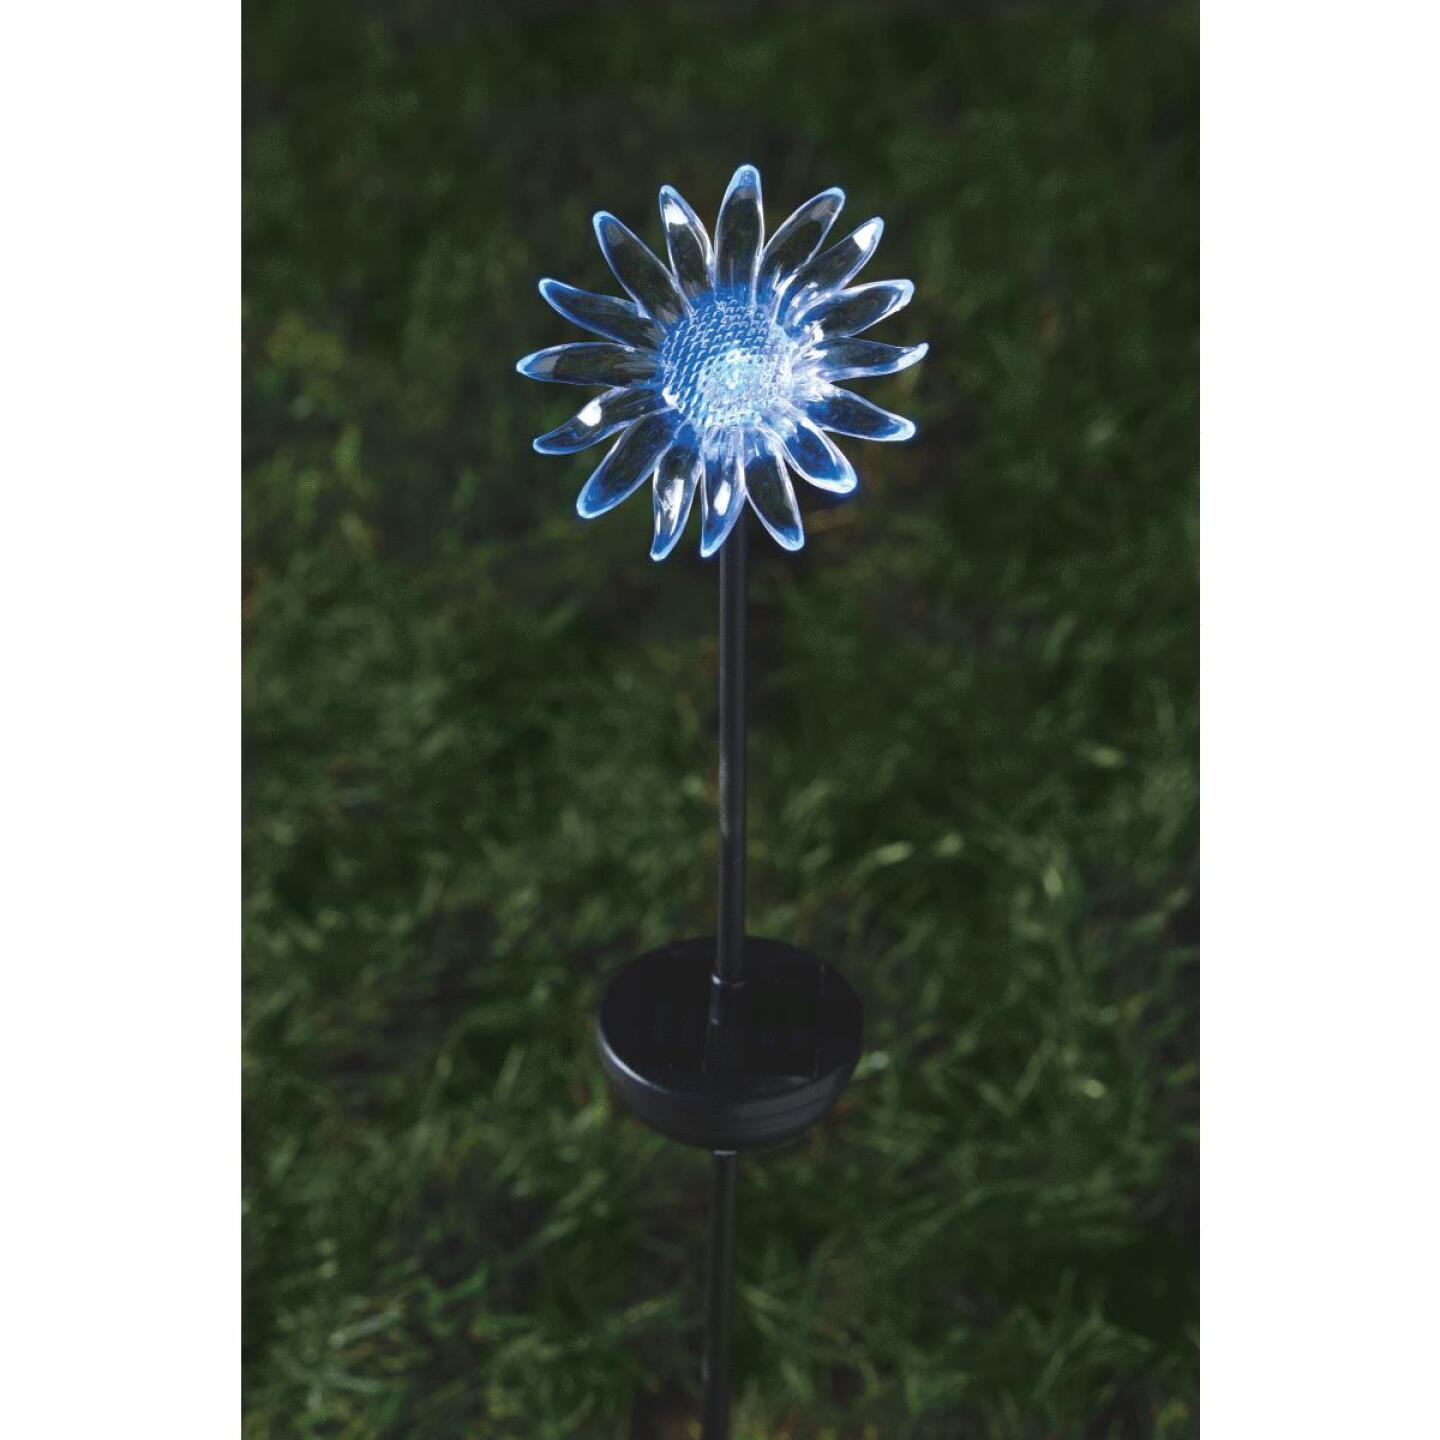 Moonrays Color Changing Plastic 32 In. H. Solar Stake Light Lawn Ornament Image 25